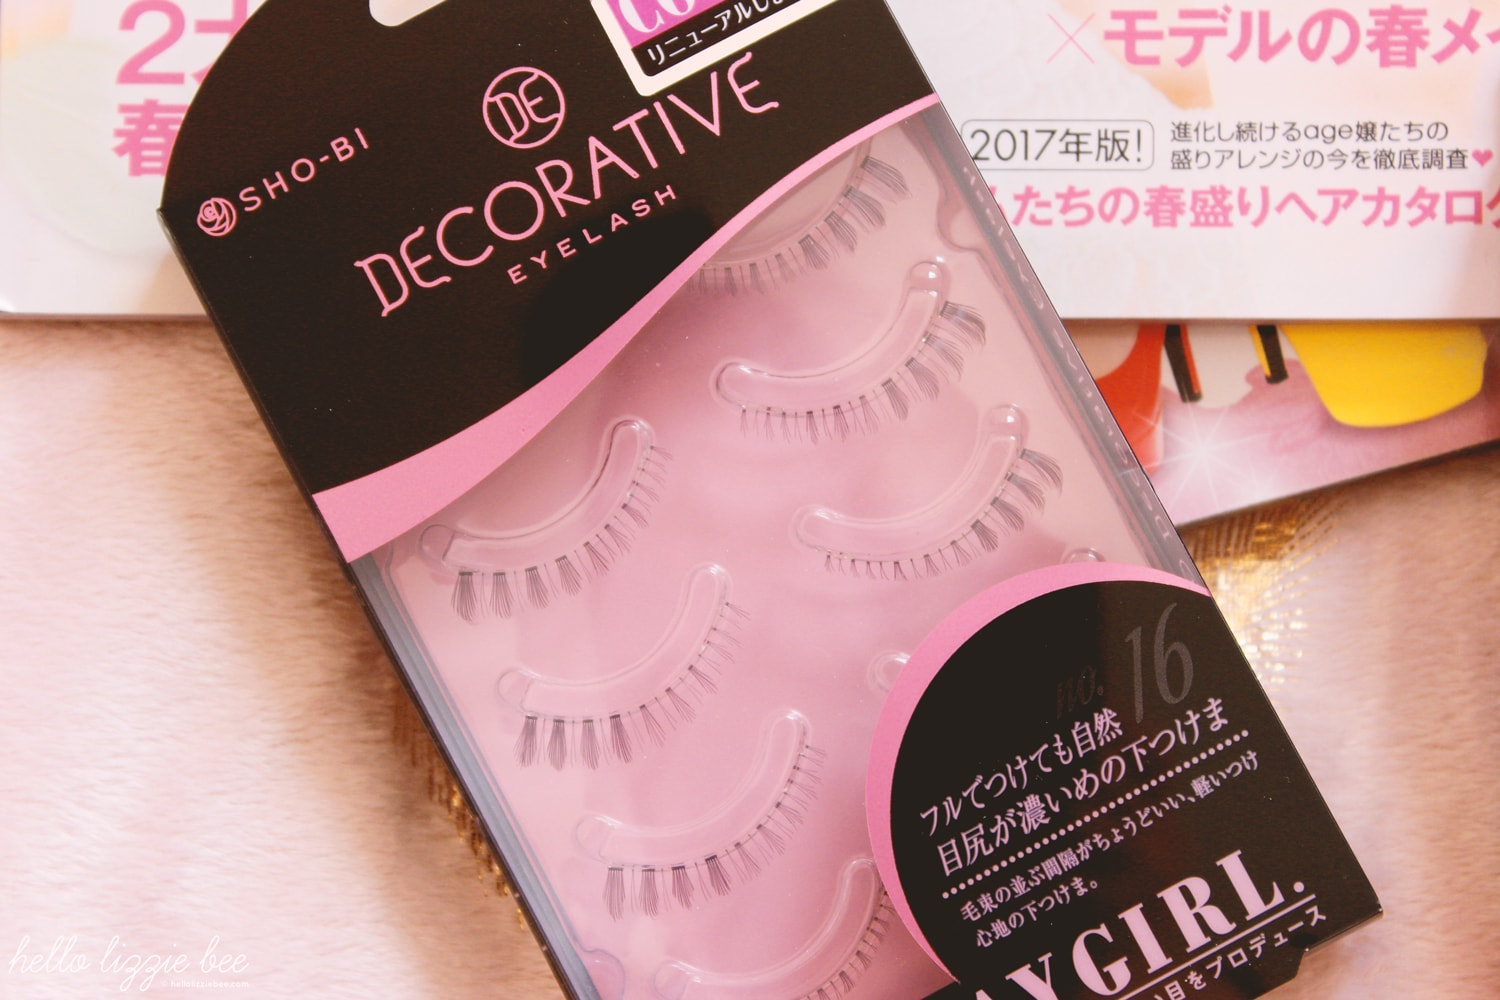 decorative lash play cool, decorative lash playgirl